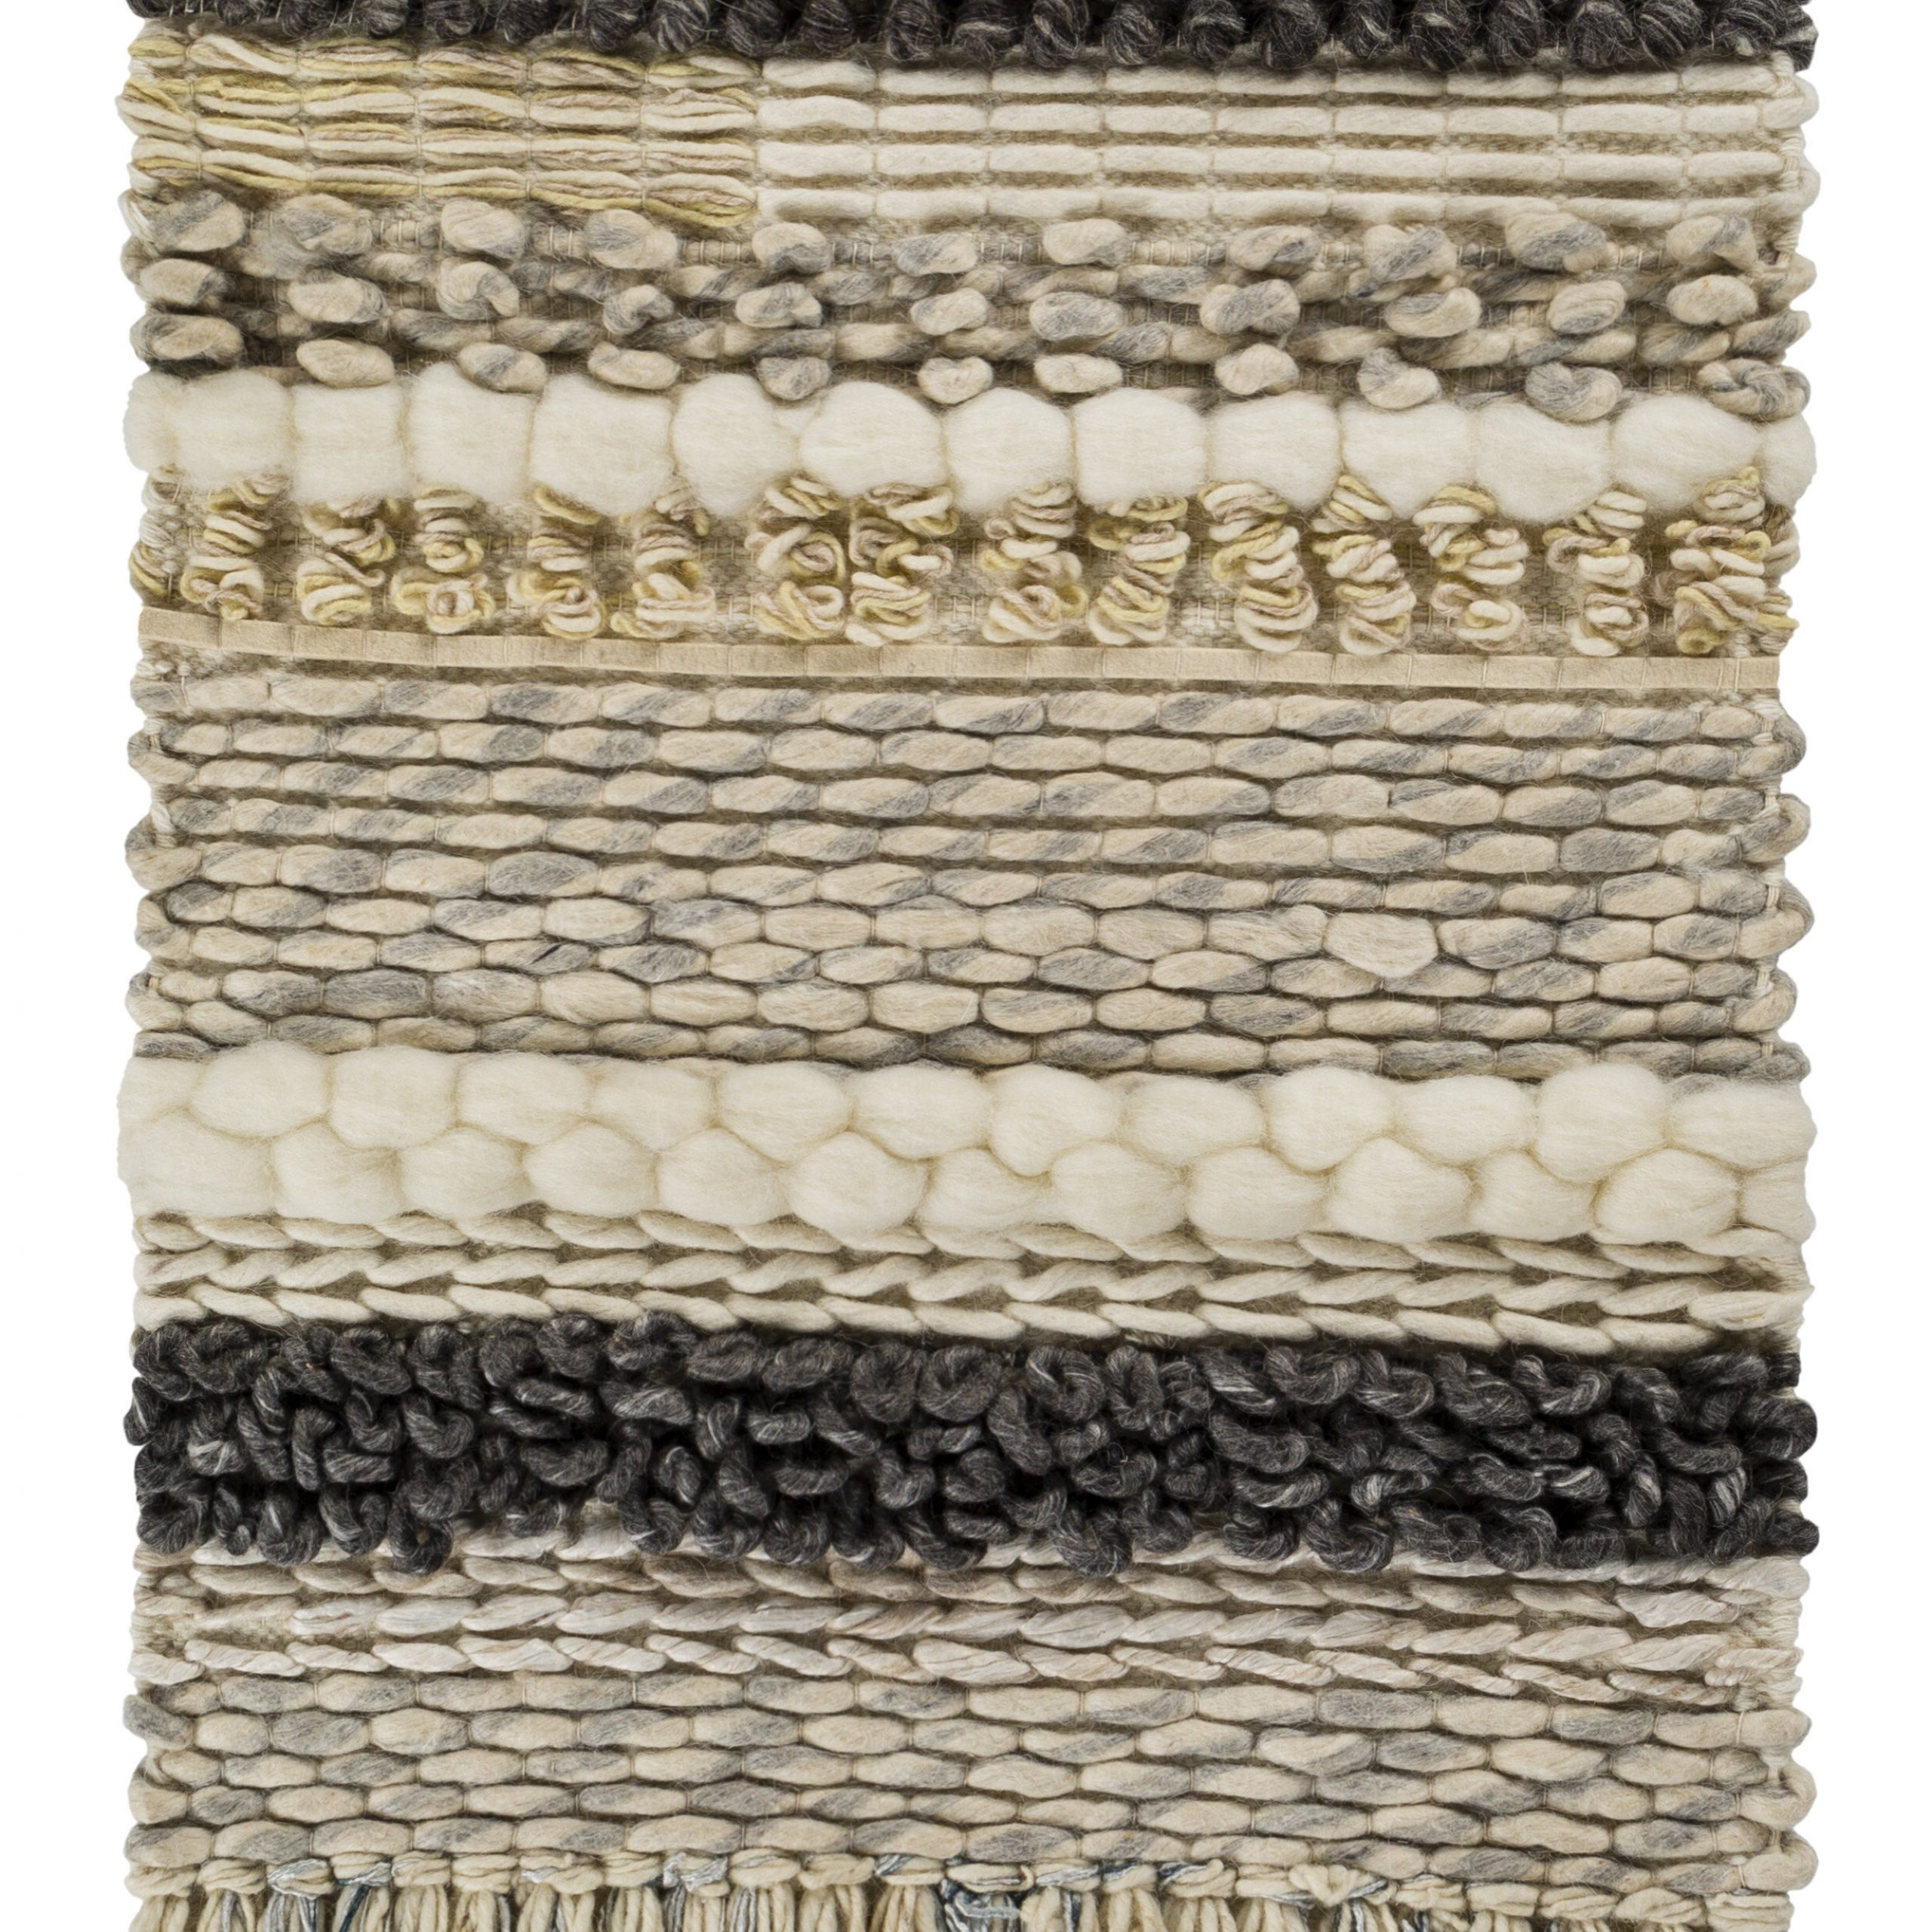 2020 Blended Fabric Ranier Wall Hangings With Hanging Accessories Included Regarding Teresina Wool And Viscose Wall Hanging With Hanging Accessories Included (View 3 of 20)